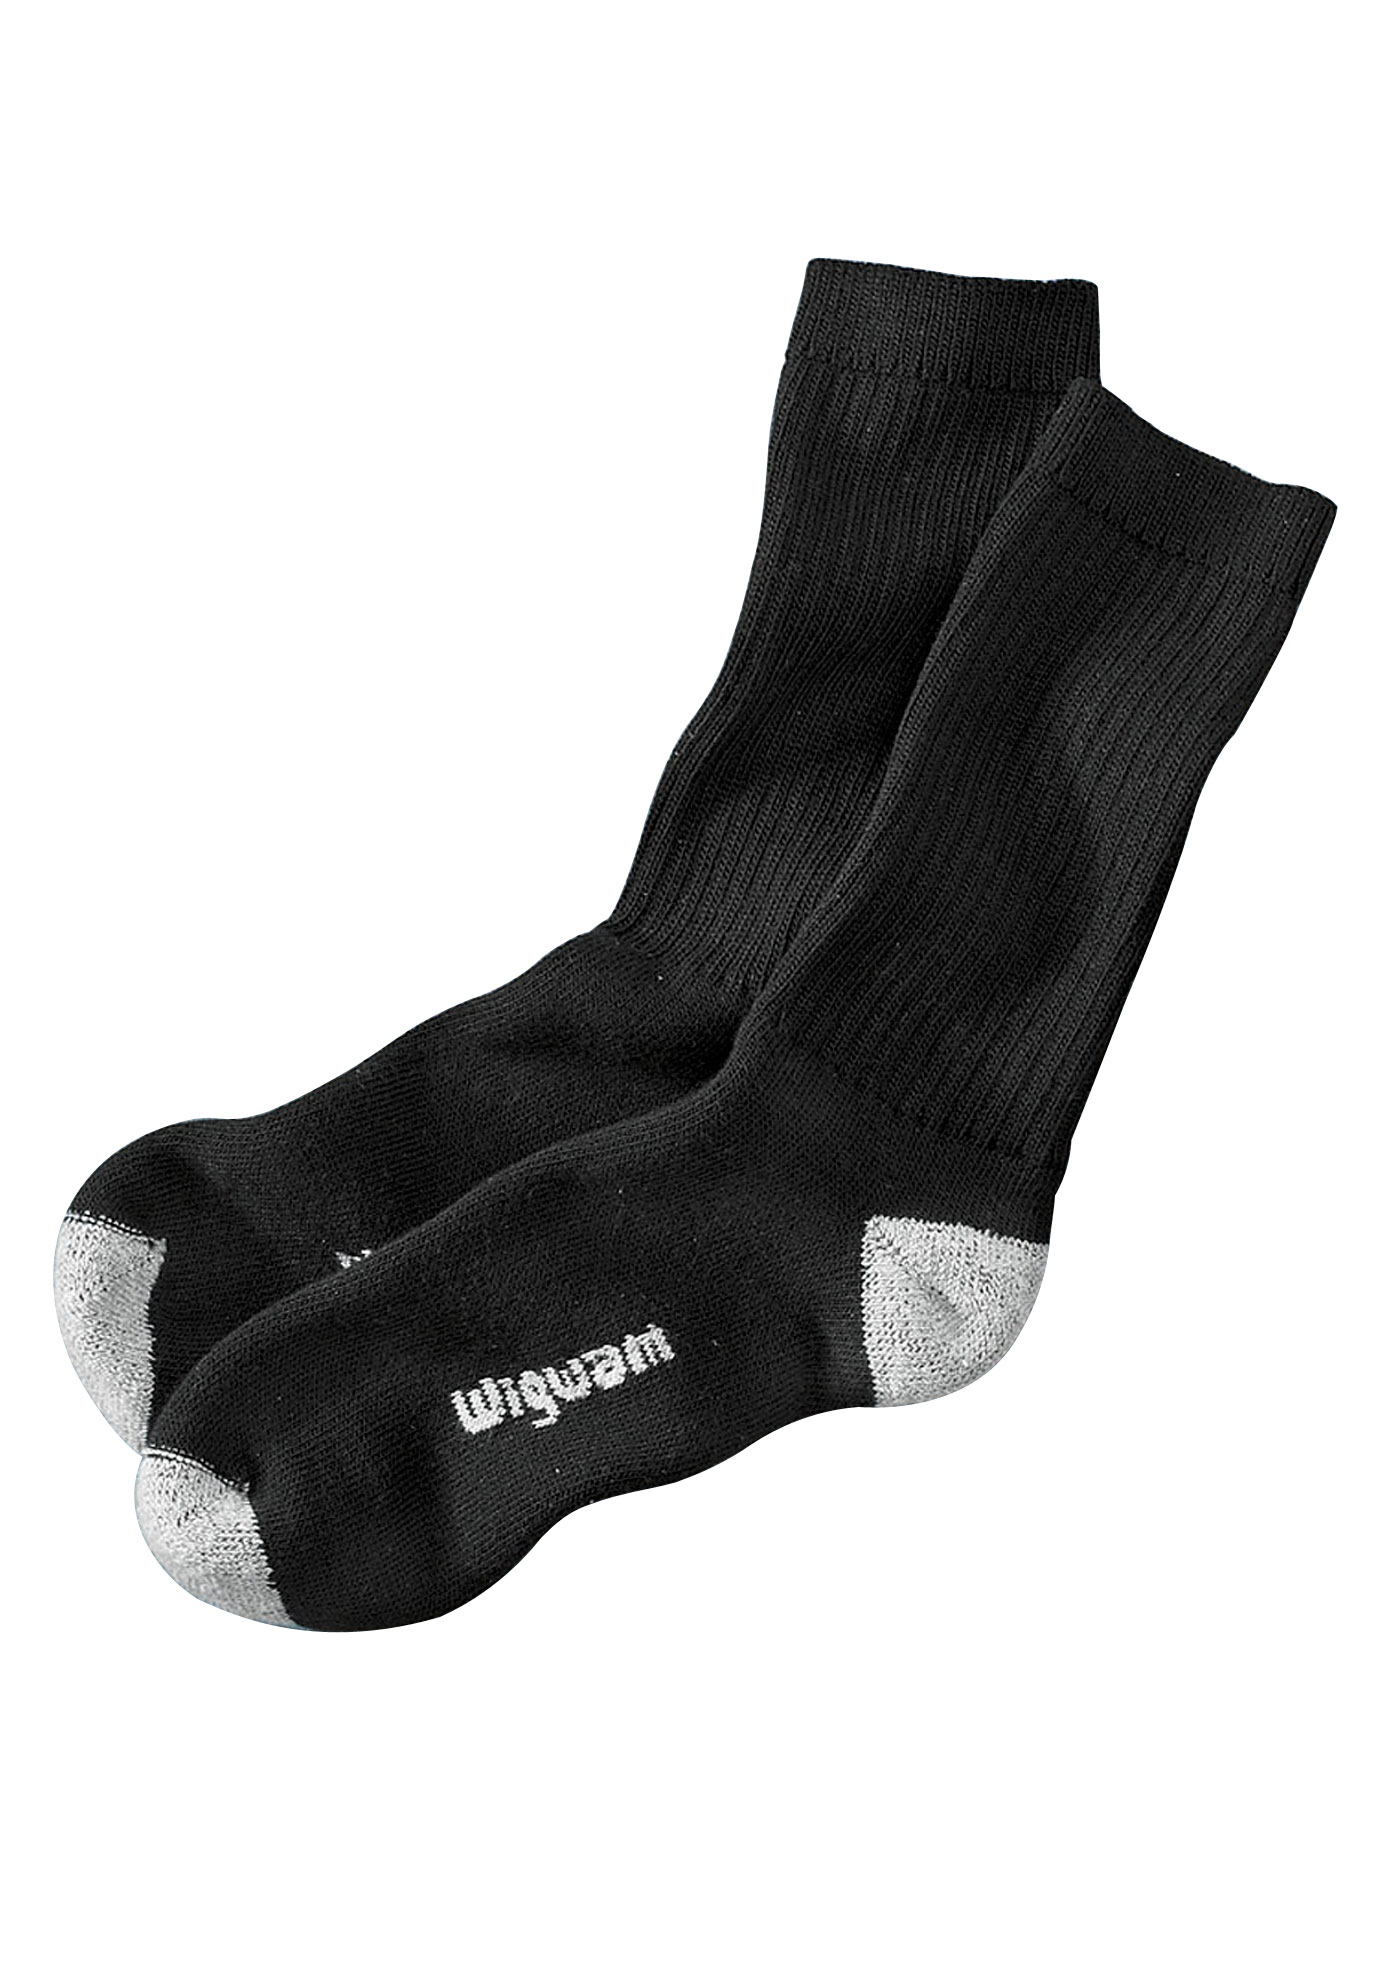 Wigwam® 2-Pack Diabetic Crew Socks,